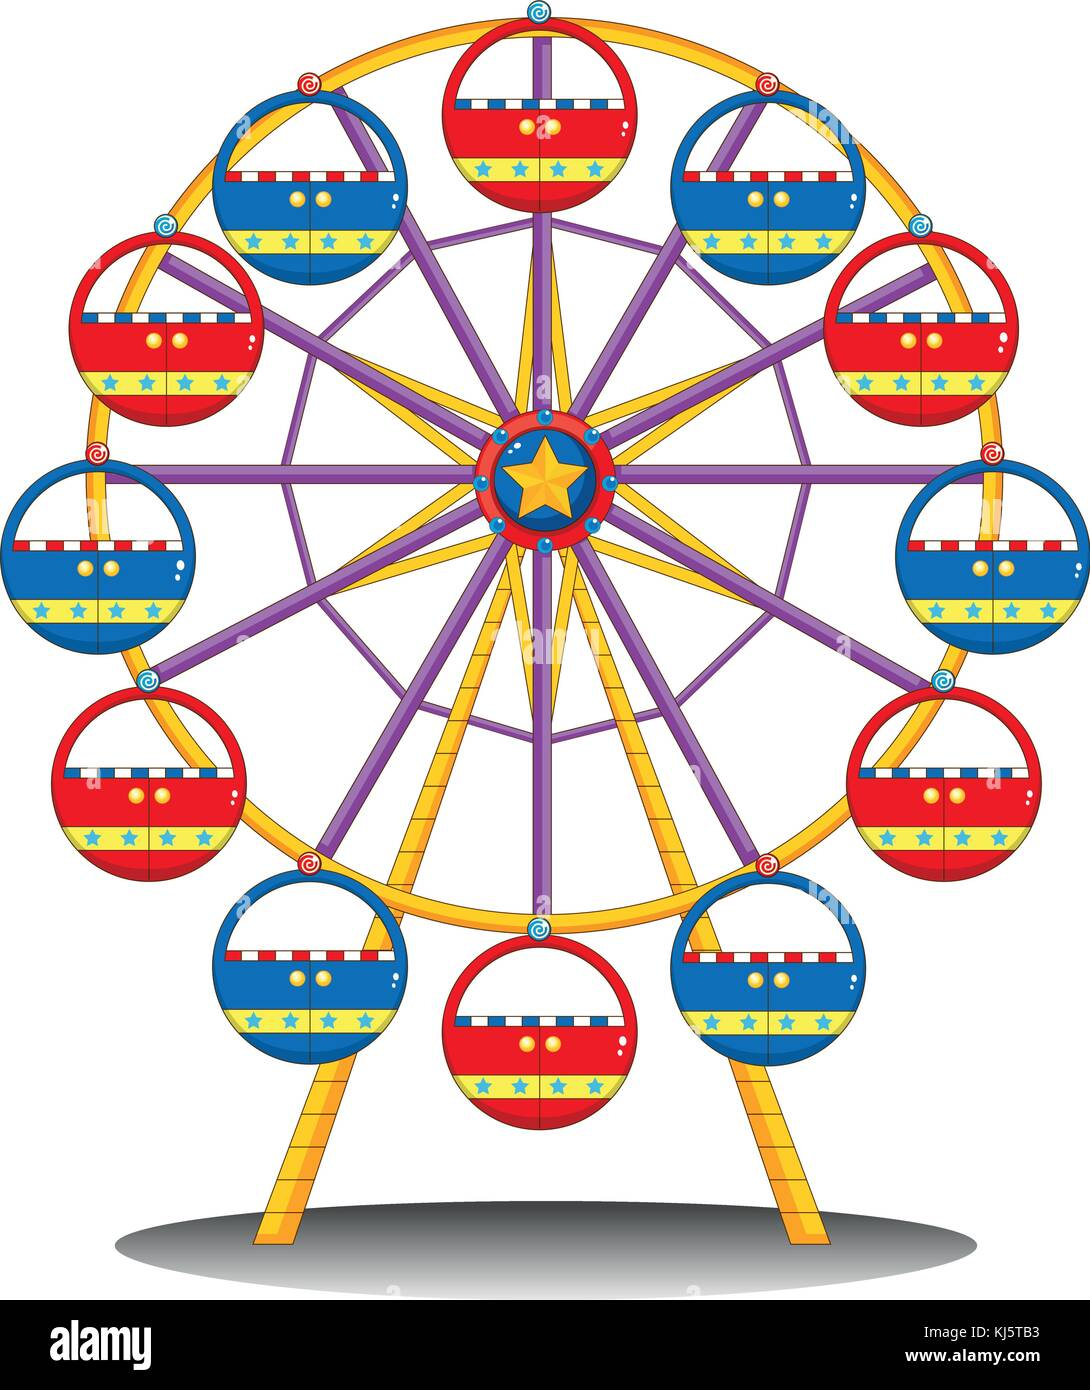 White ferris wheel stock vector images alamy illustration of a ferris wheel on a white background stock vector biocorpaavc